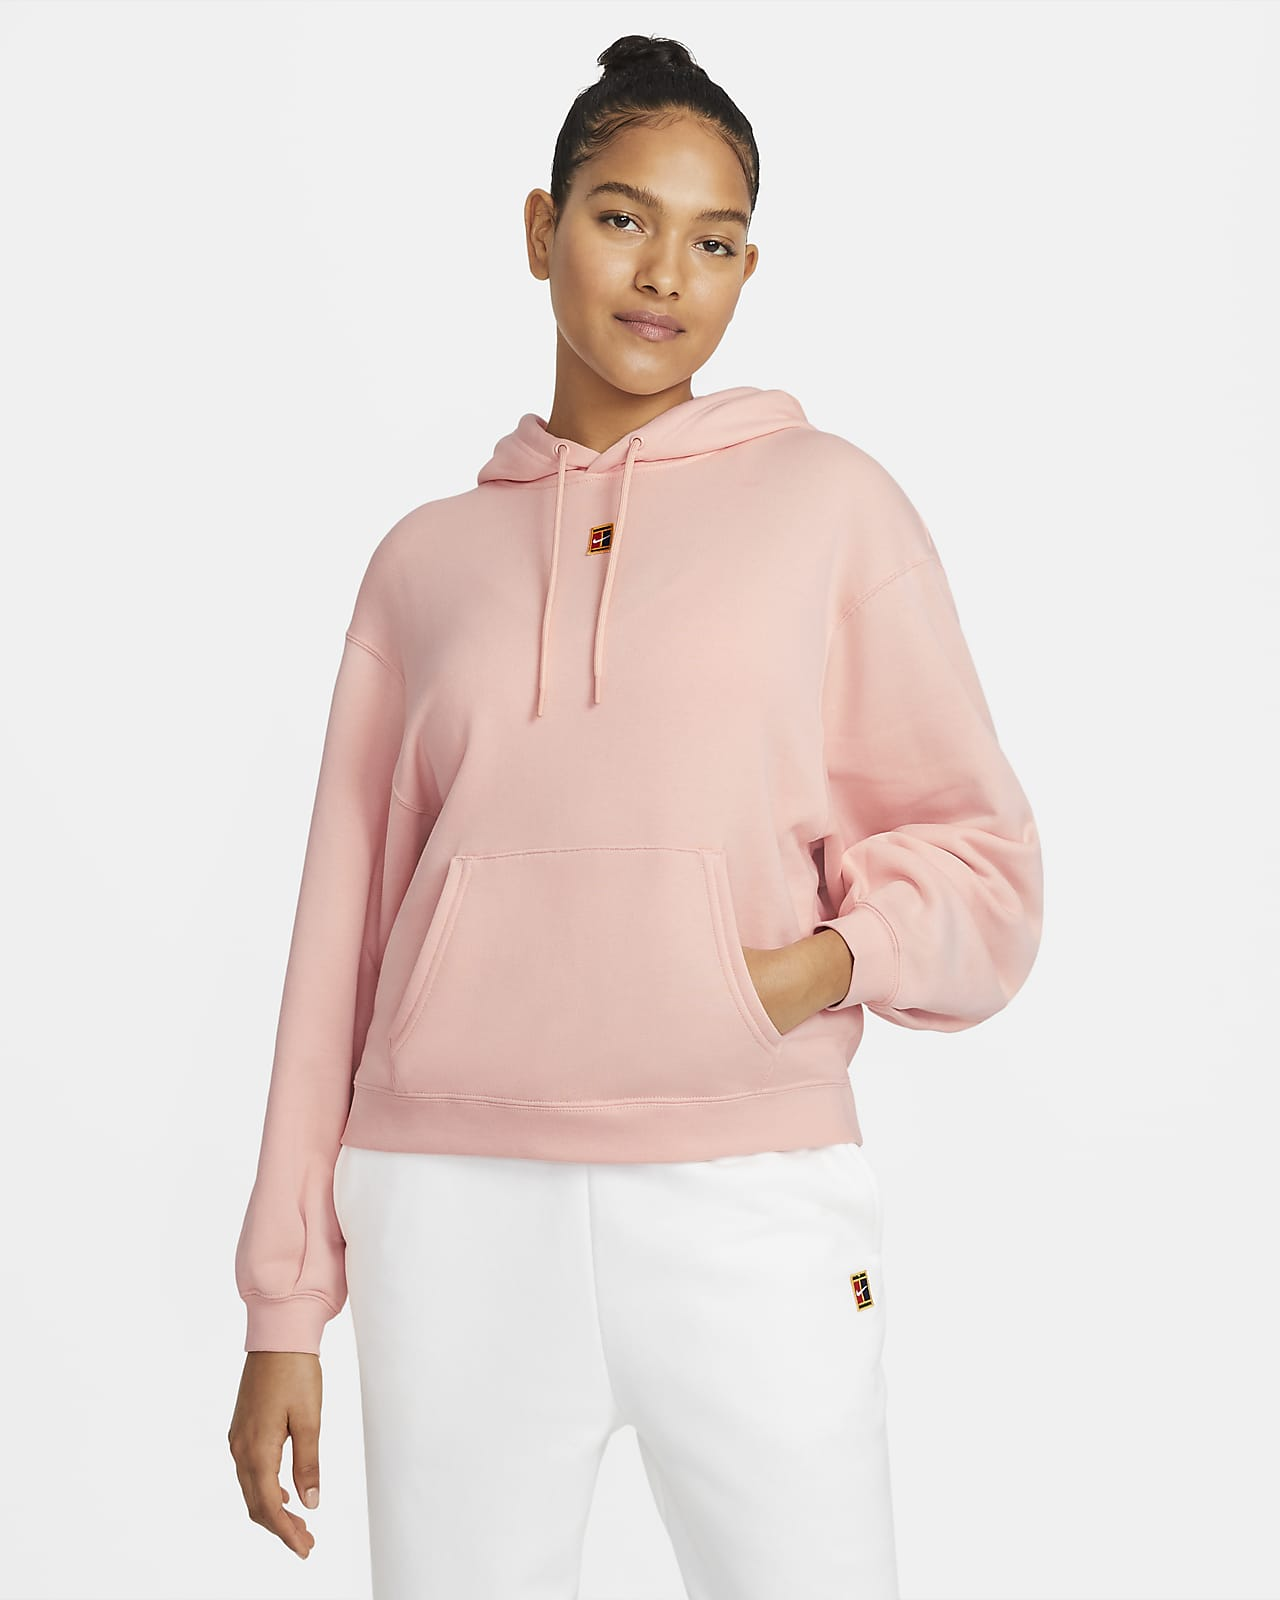 NikeCourt Women's Fleece Tennis Hoodie